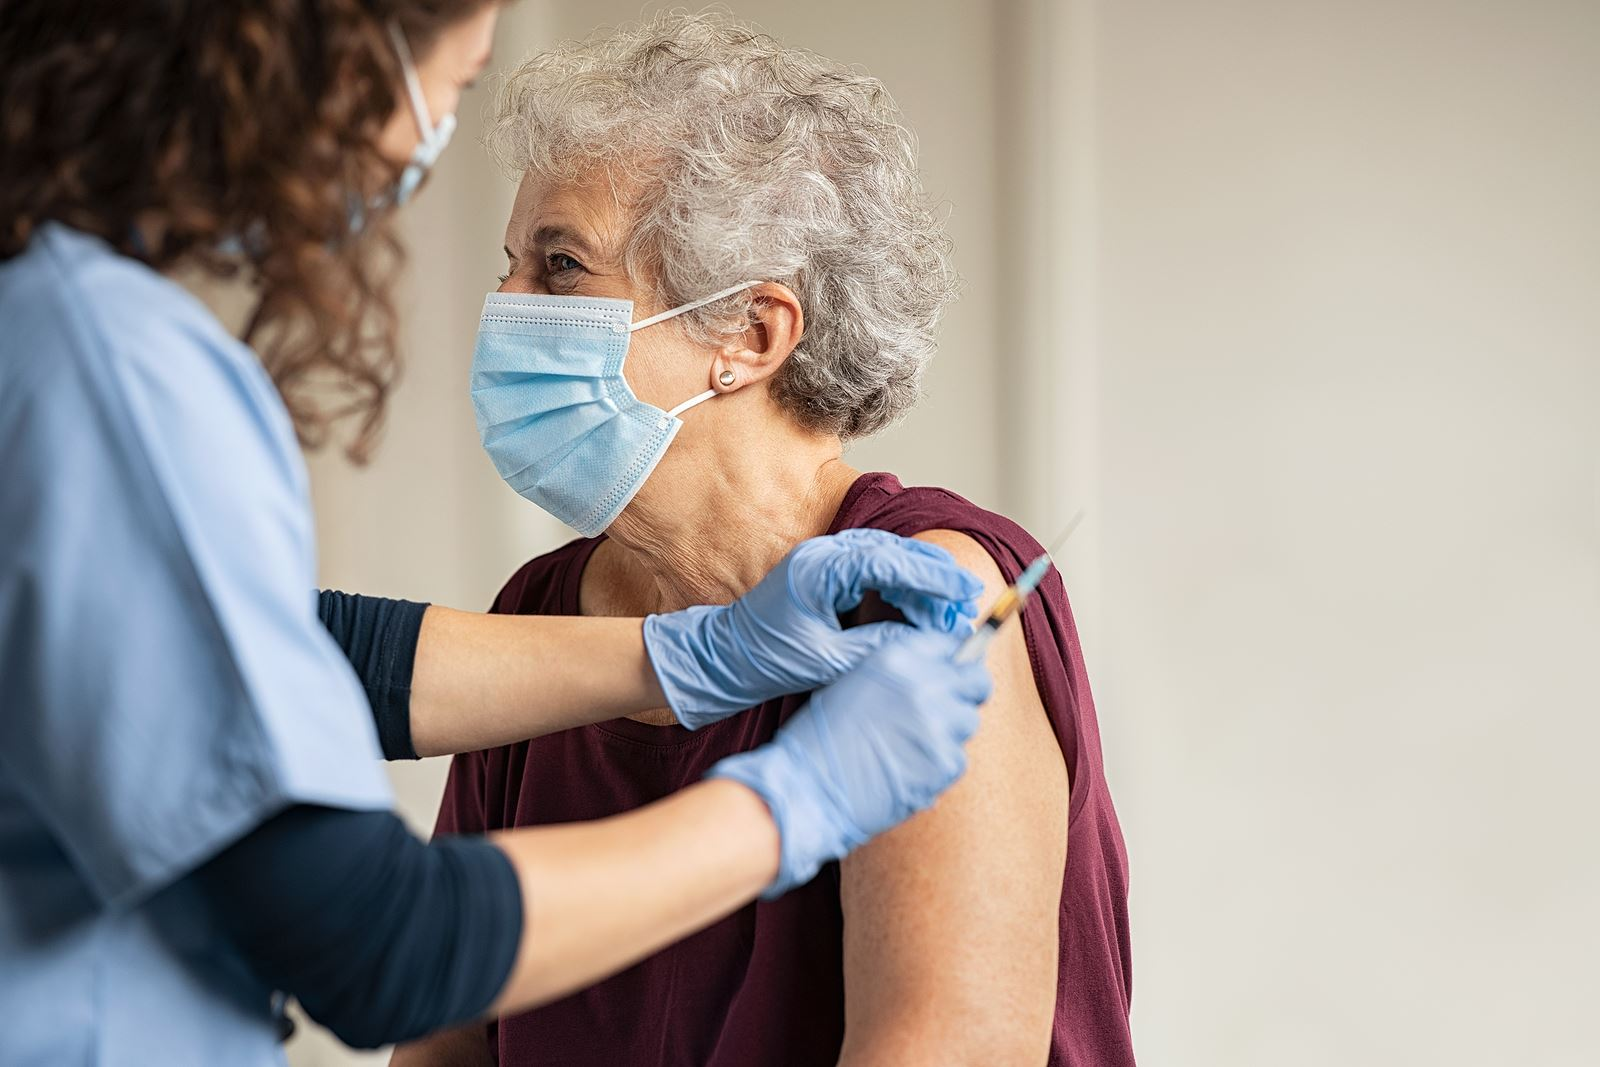 Woman getting vaccine from healthcare worker